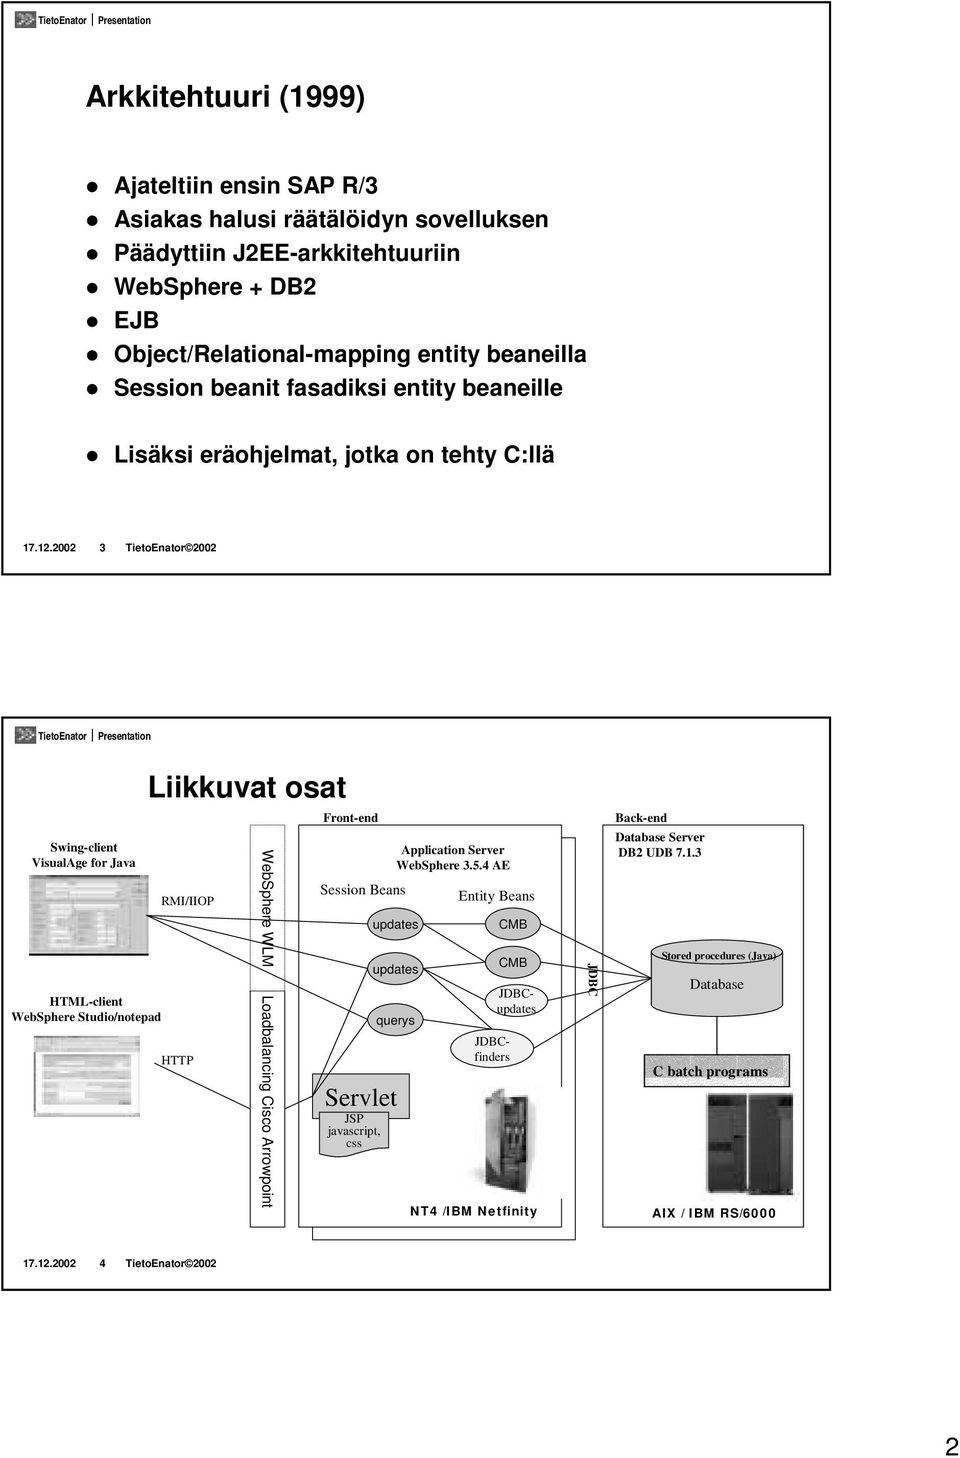 2002 3 TietoEnator 2002 Liikkuvat osat Front-end Back-end Swing-client VisualAge for Java HTML-client WebSphere Studio/notepad RMI/IIOP HTTP WebSphere WLM Loadbalancing Cisco Arrowpoint